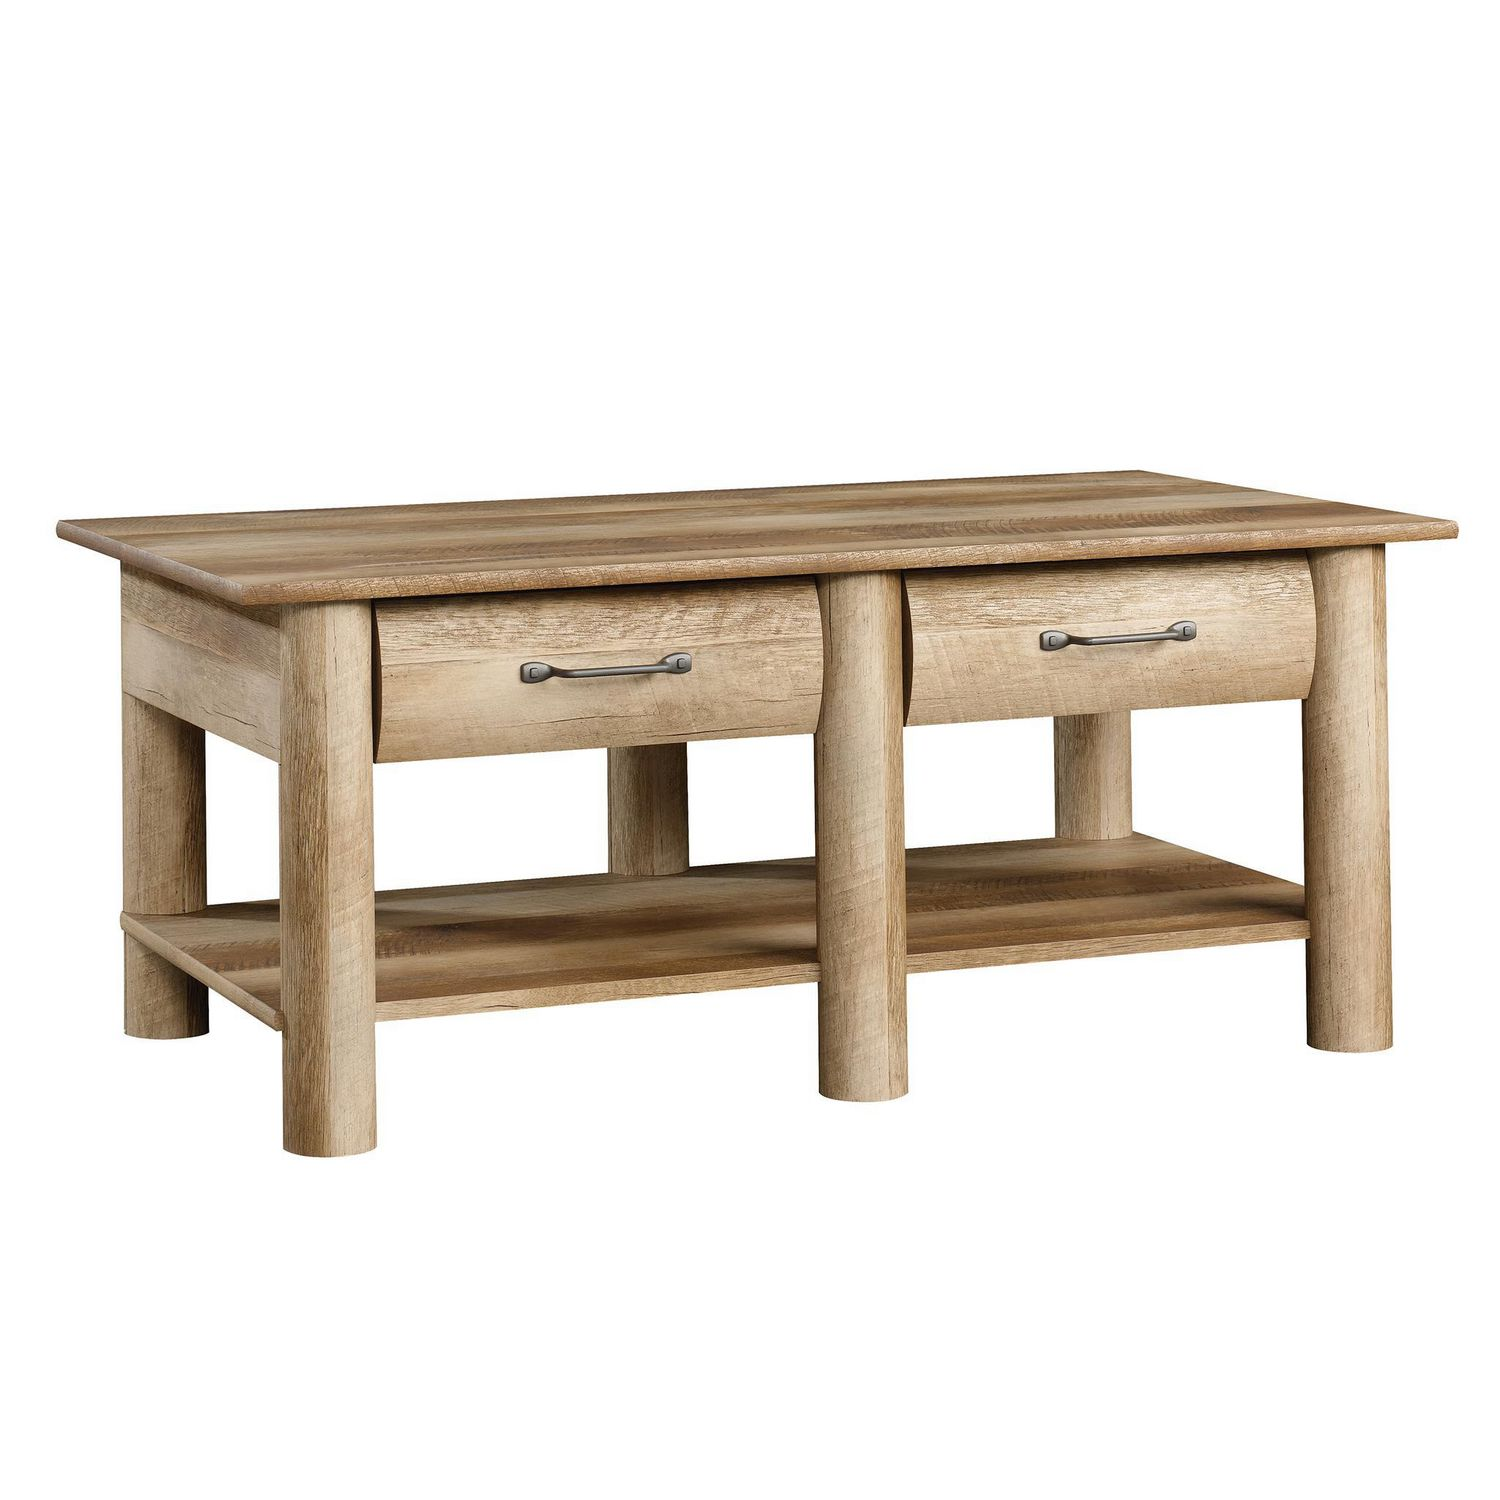 Sauder La Collection Boone Mountain Table De Salon Finition Chêne Craftsman 416562 Walmart Canada